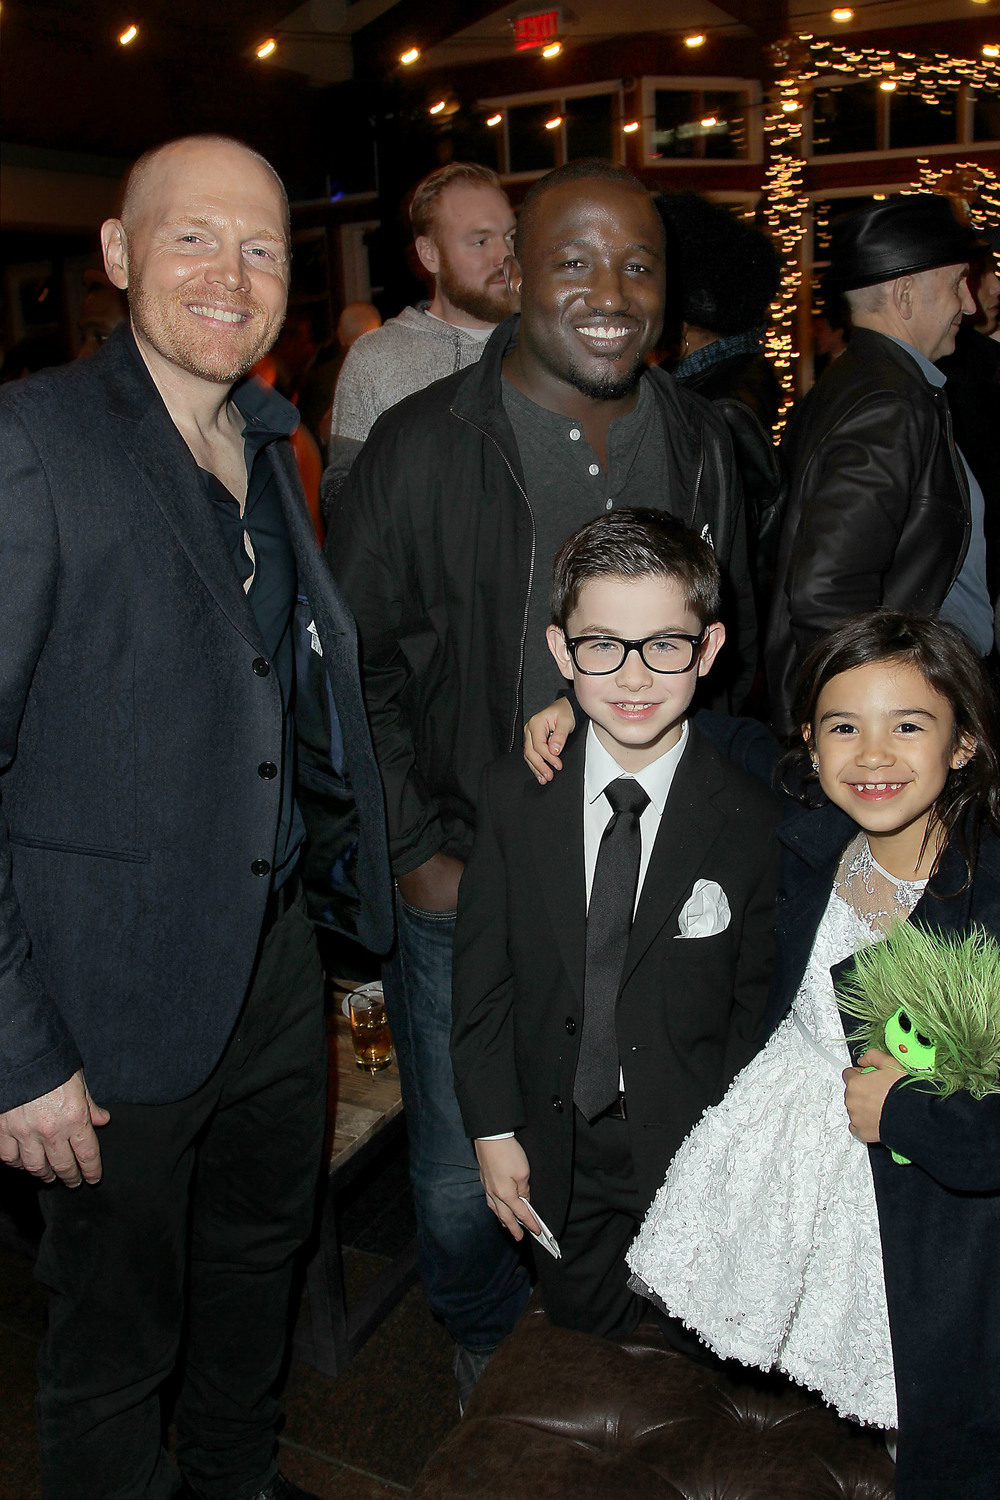 Bill Burr, Hannibal Buress, Owen Vaccaro, Scarlett Estevez